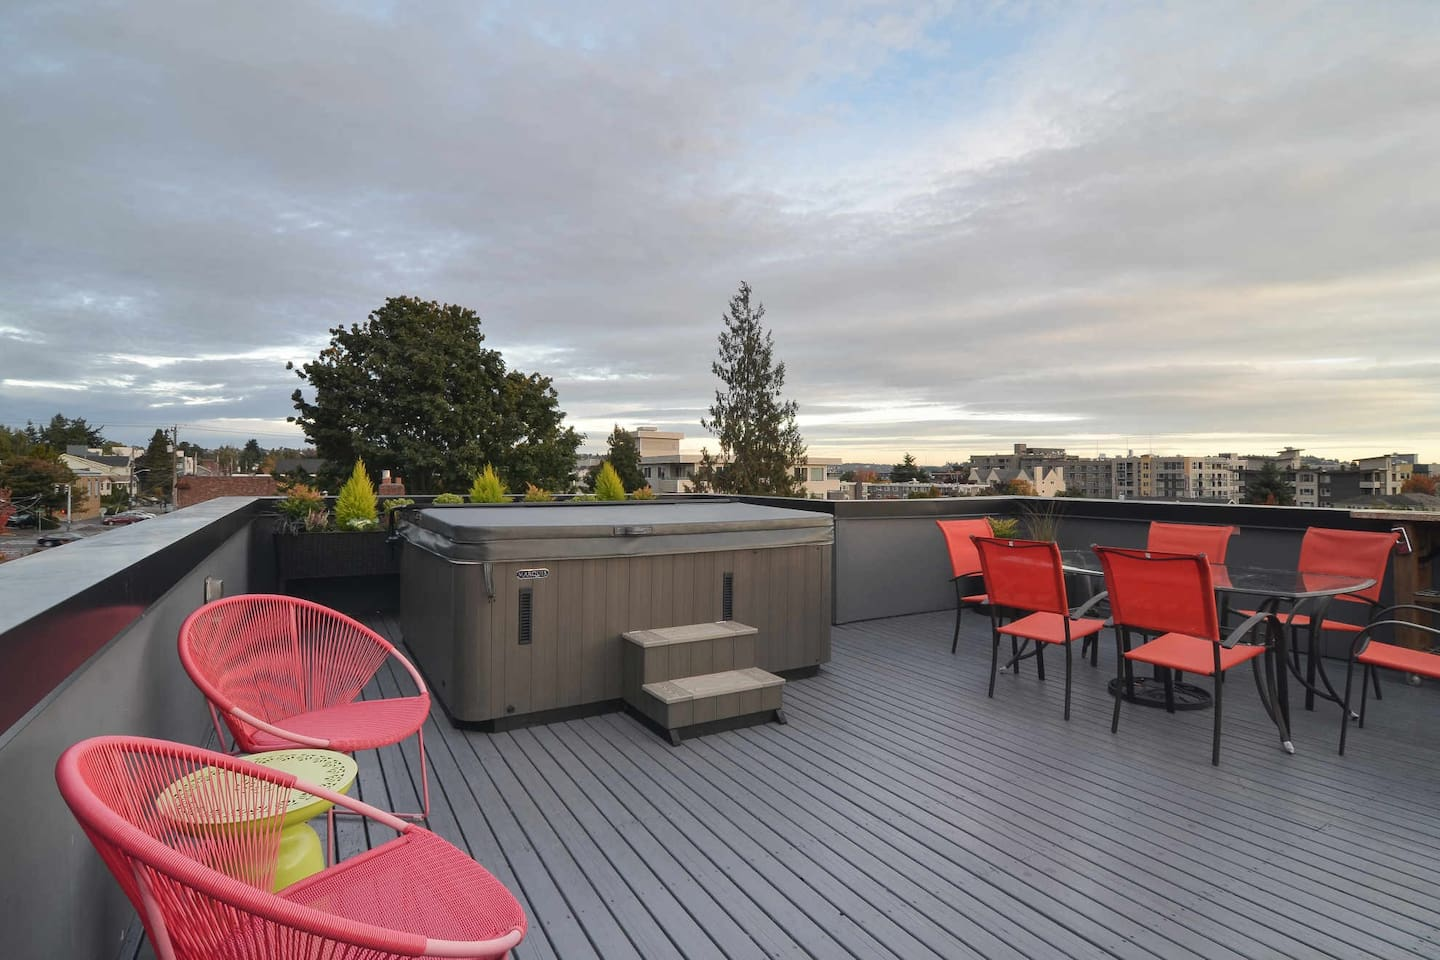 The rooftop deck with 360 degree views to Discovery Park and the City of Seattle from the relaxing 6 person hot tub.